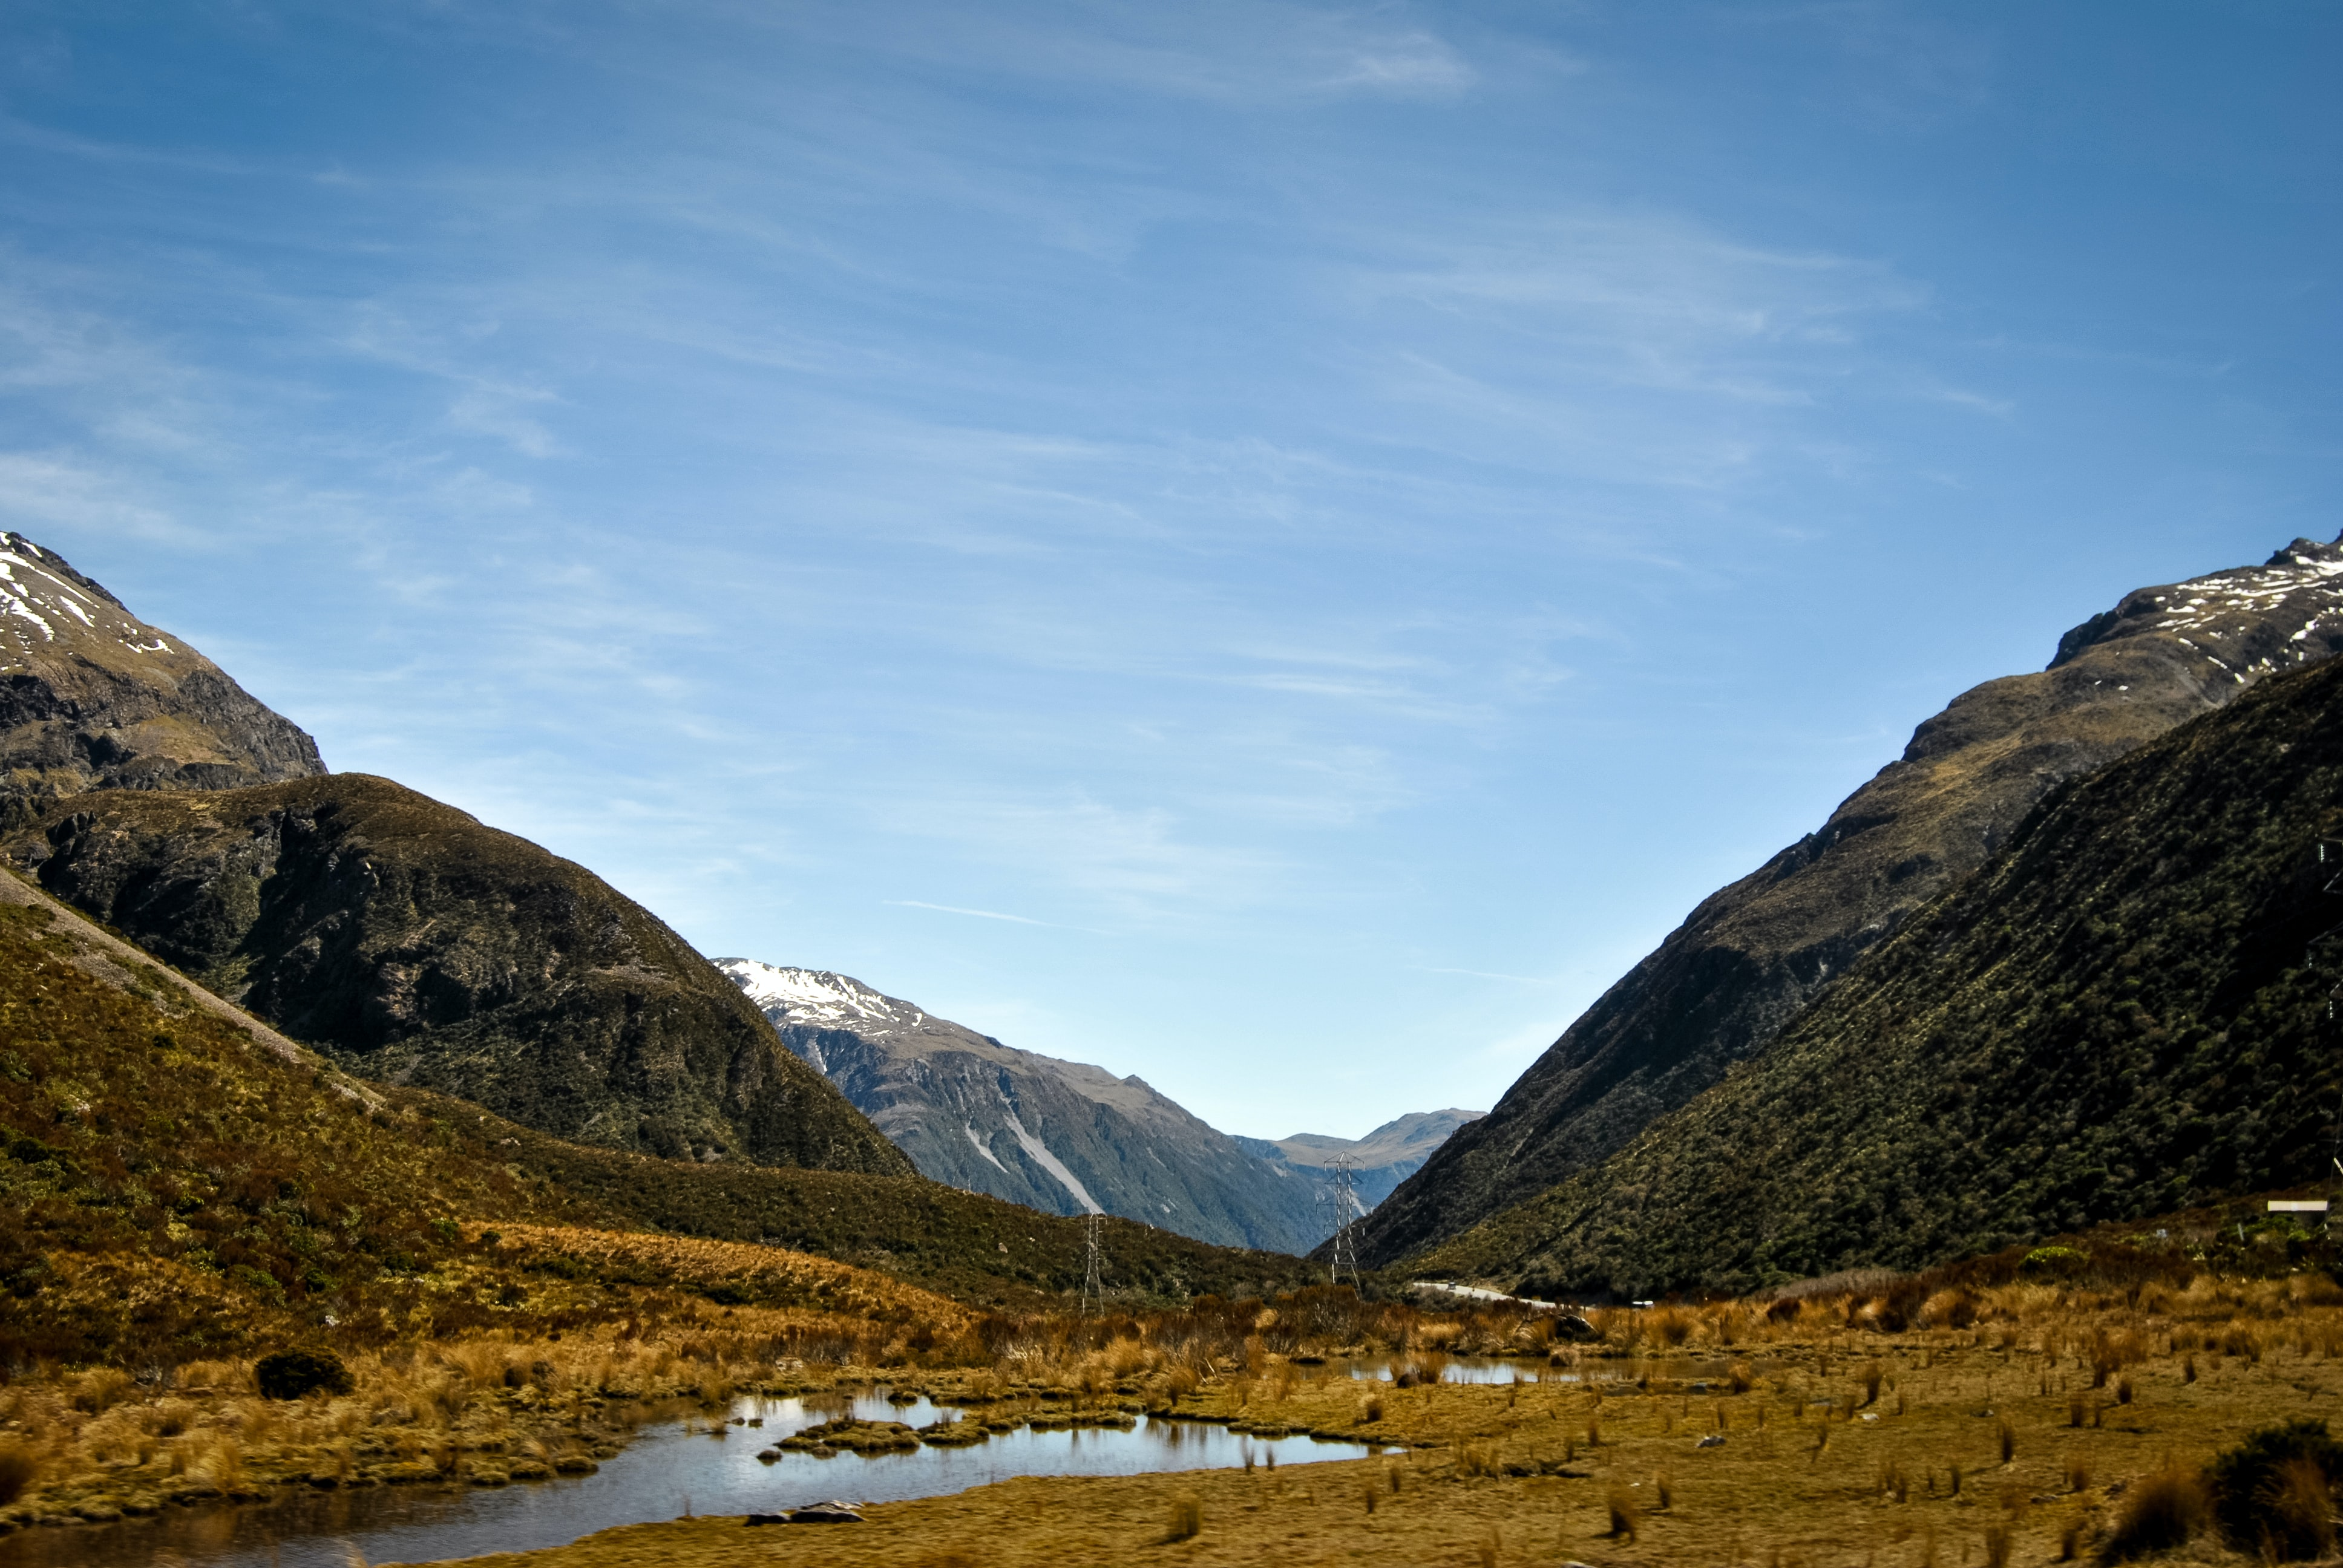 Golden and brown wetlands in a mountain valley in New Zealand on a cold morning